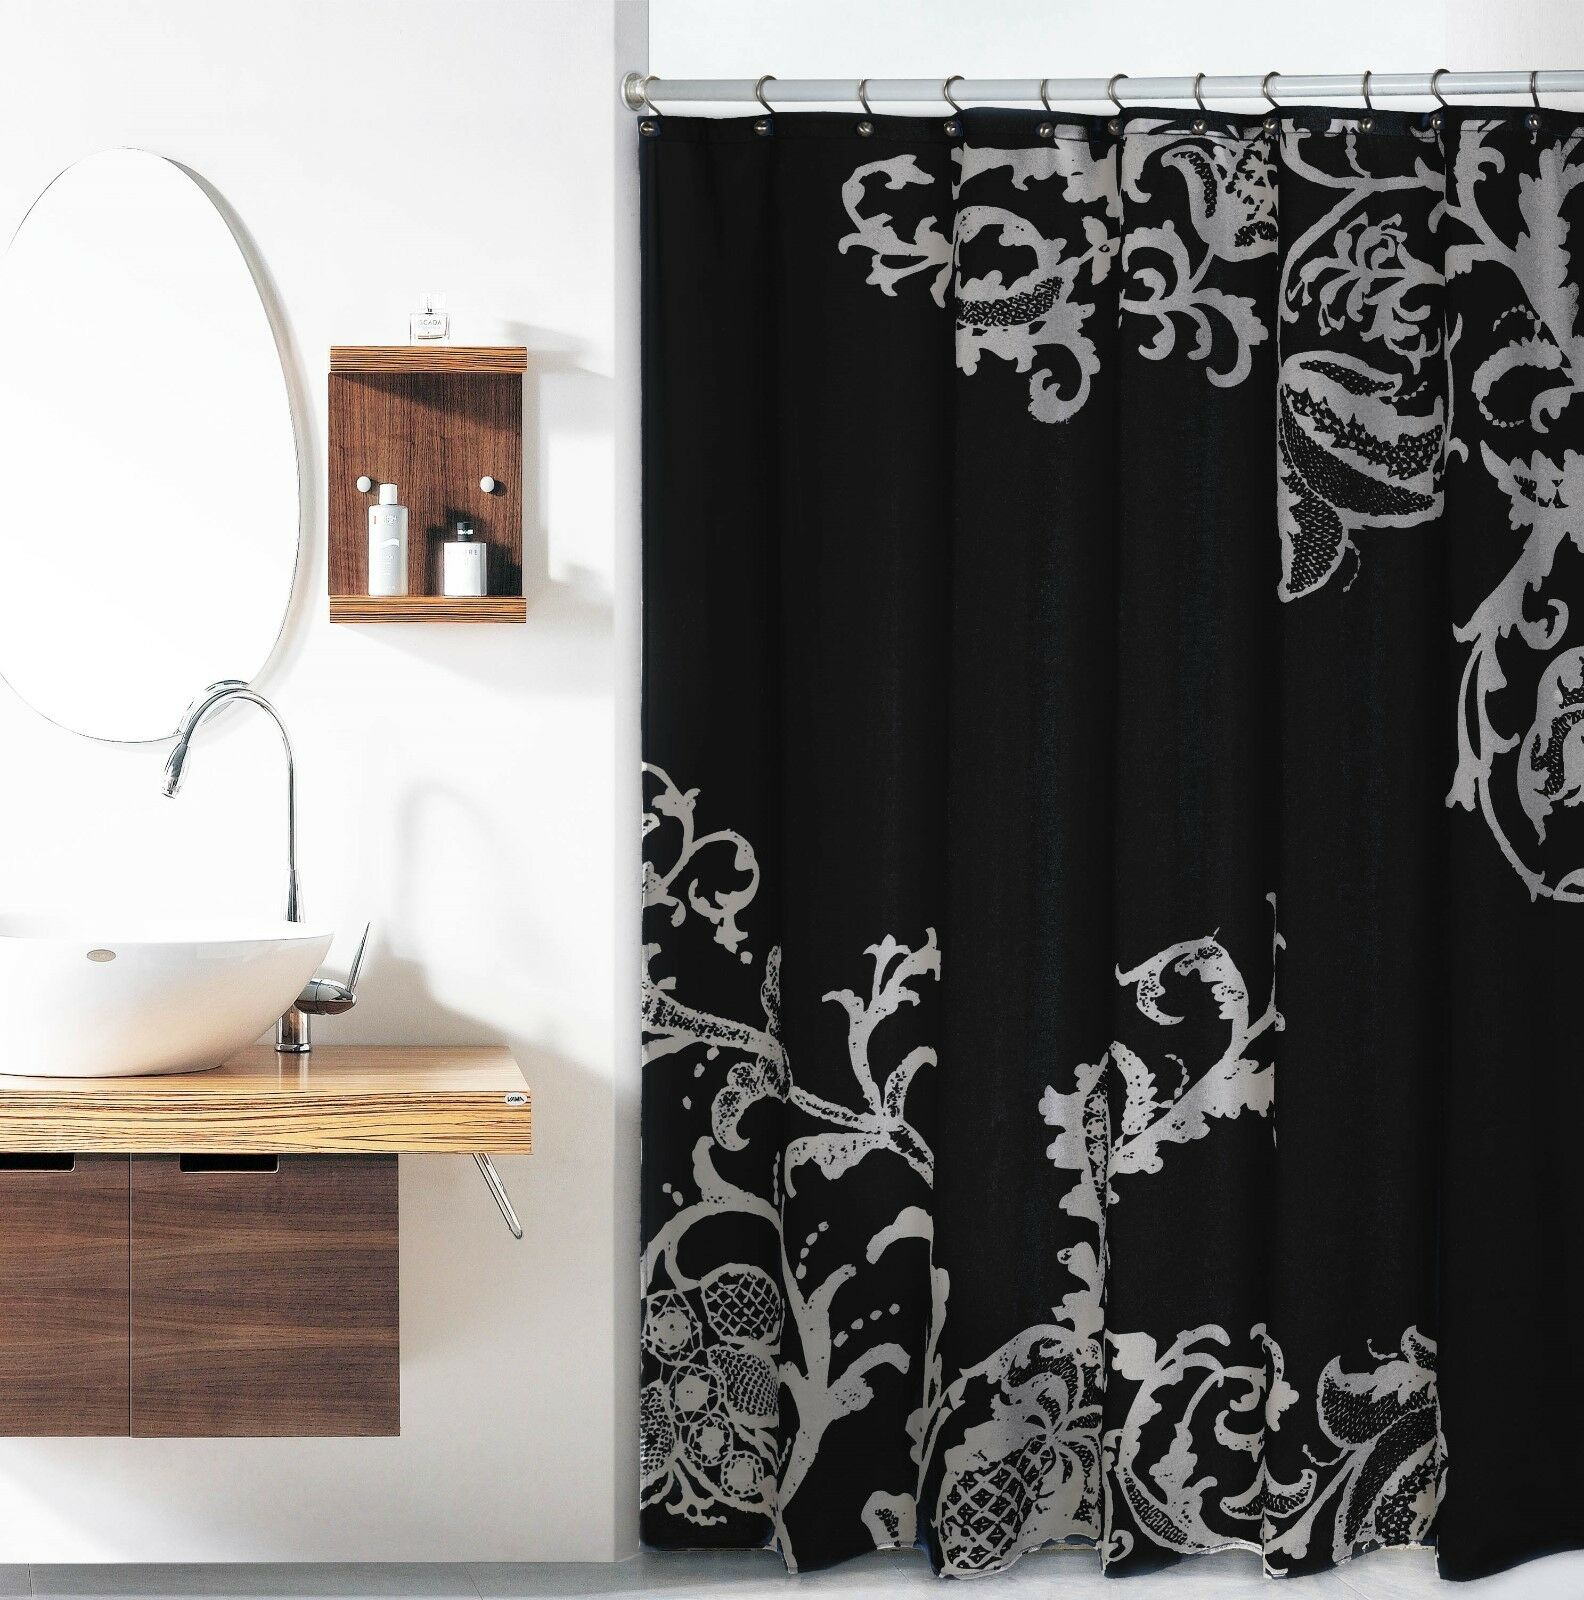 Fabric Shower Curtain Black With Gray Floral Pattern 70 W X 72 L